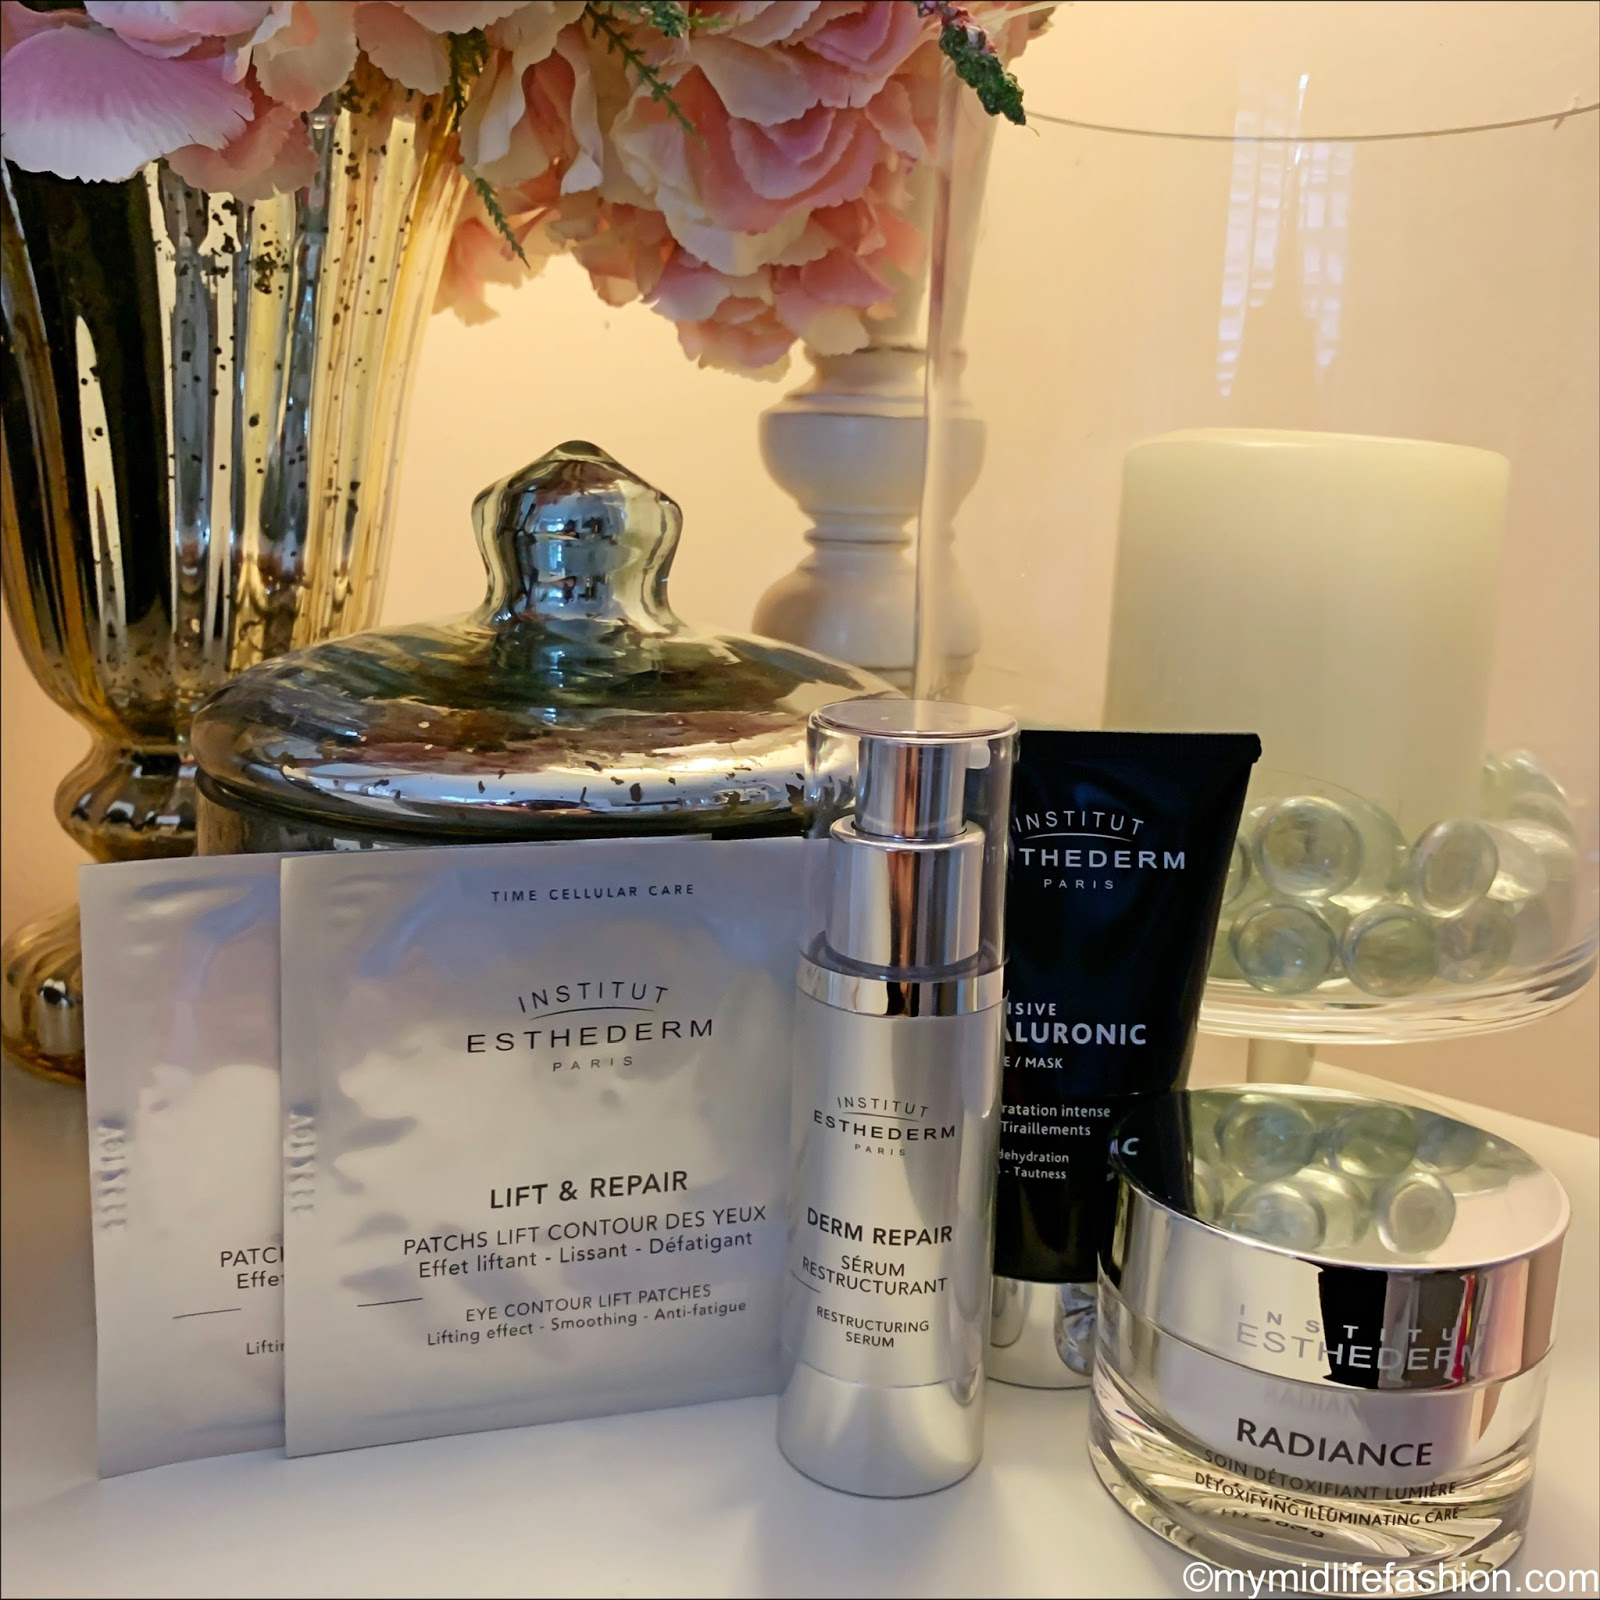 my midlife fashion, institut esthederm, institut esthederm eye contour lift patches, institut esthederm derm repair restructuring serum, institut esthederm intensive hyaluronic mask, institut esthederm radiance detoxifying illuminating care